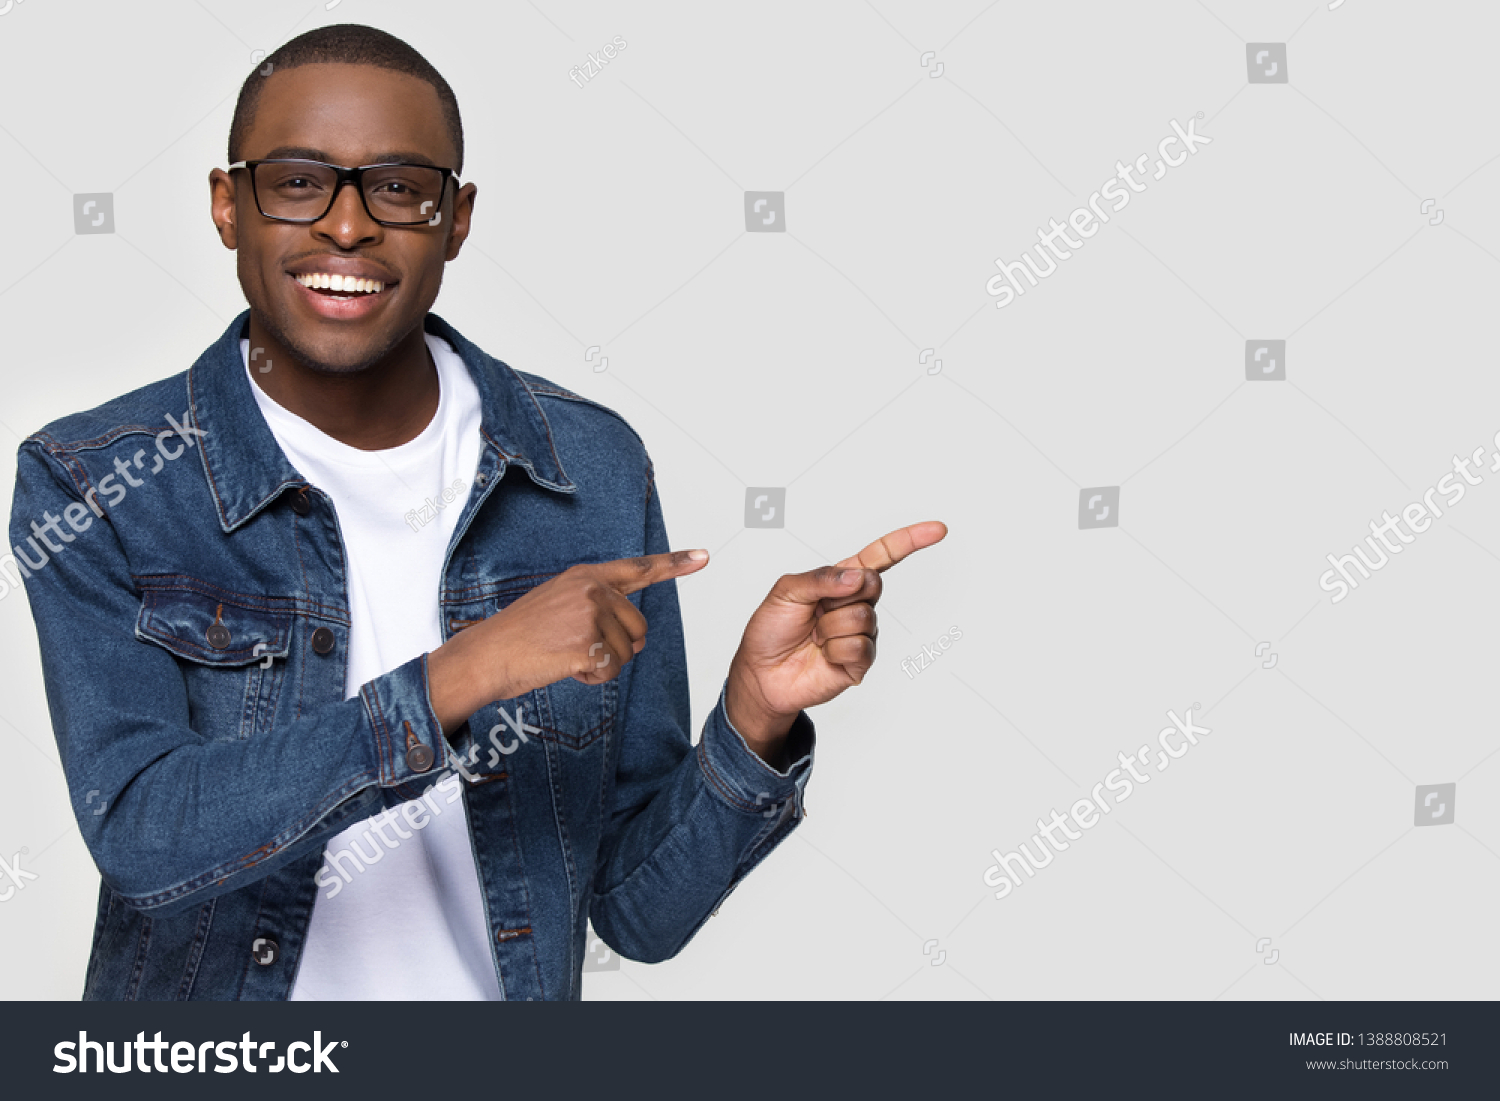 Cheerful african man wearing glasses jean jacket having white snow smile pointing fingers aside at copy space for your text advertisement, advertise teeth whitening or eyewear store good offer concept #1388808521